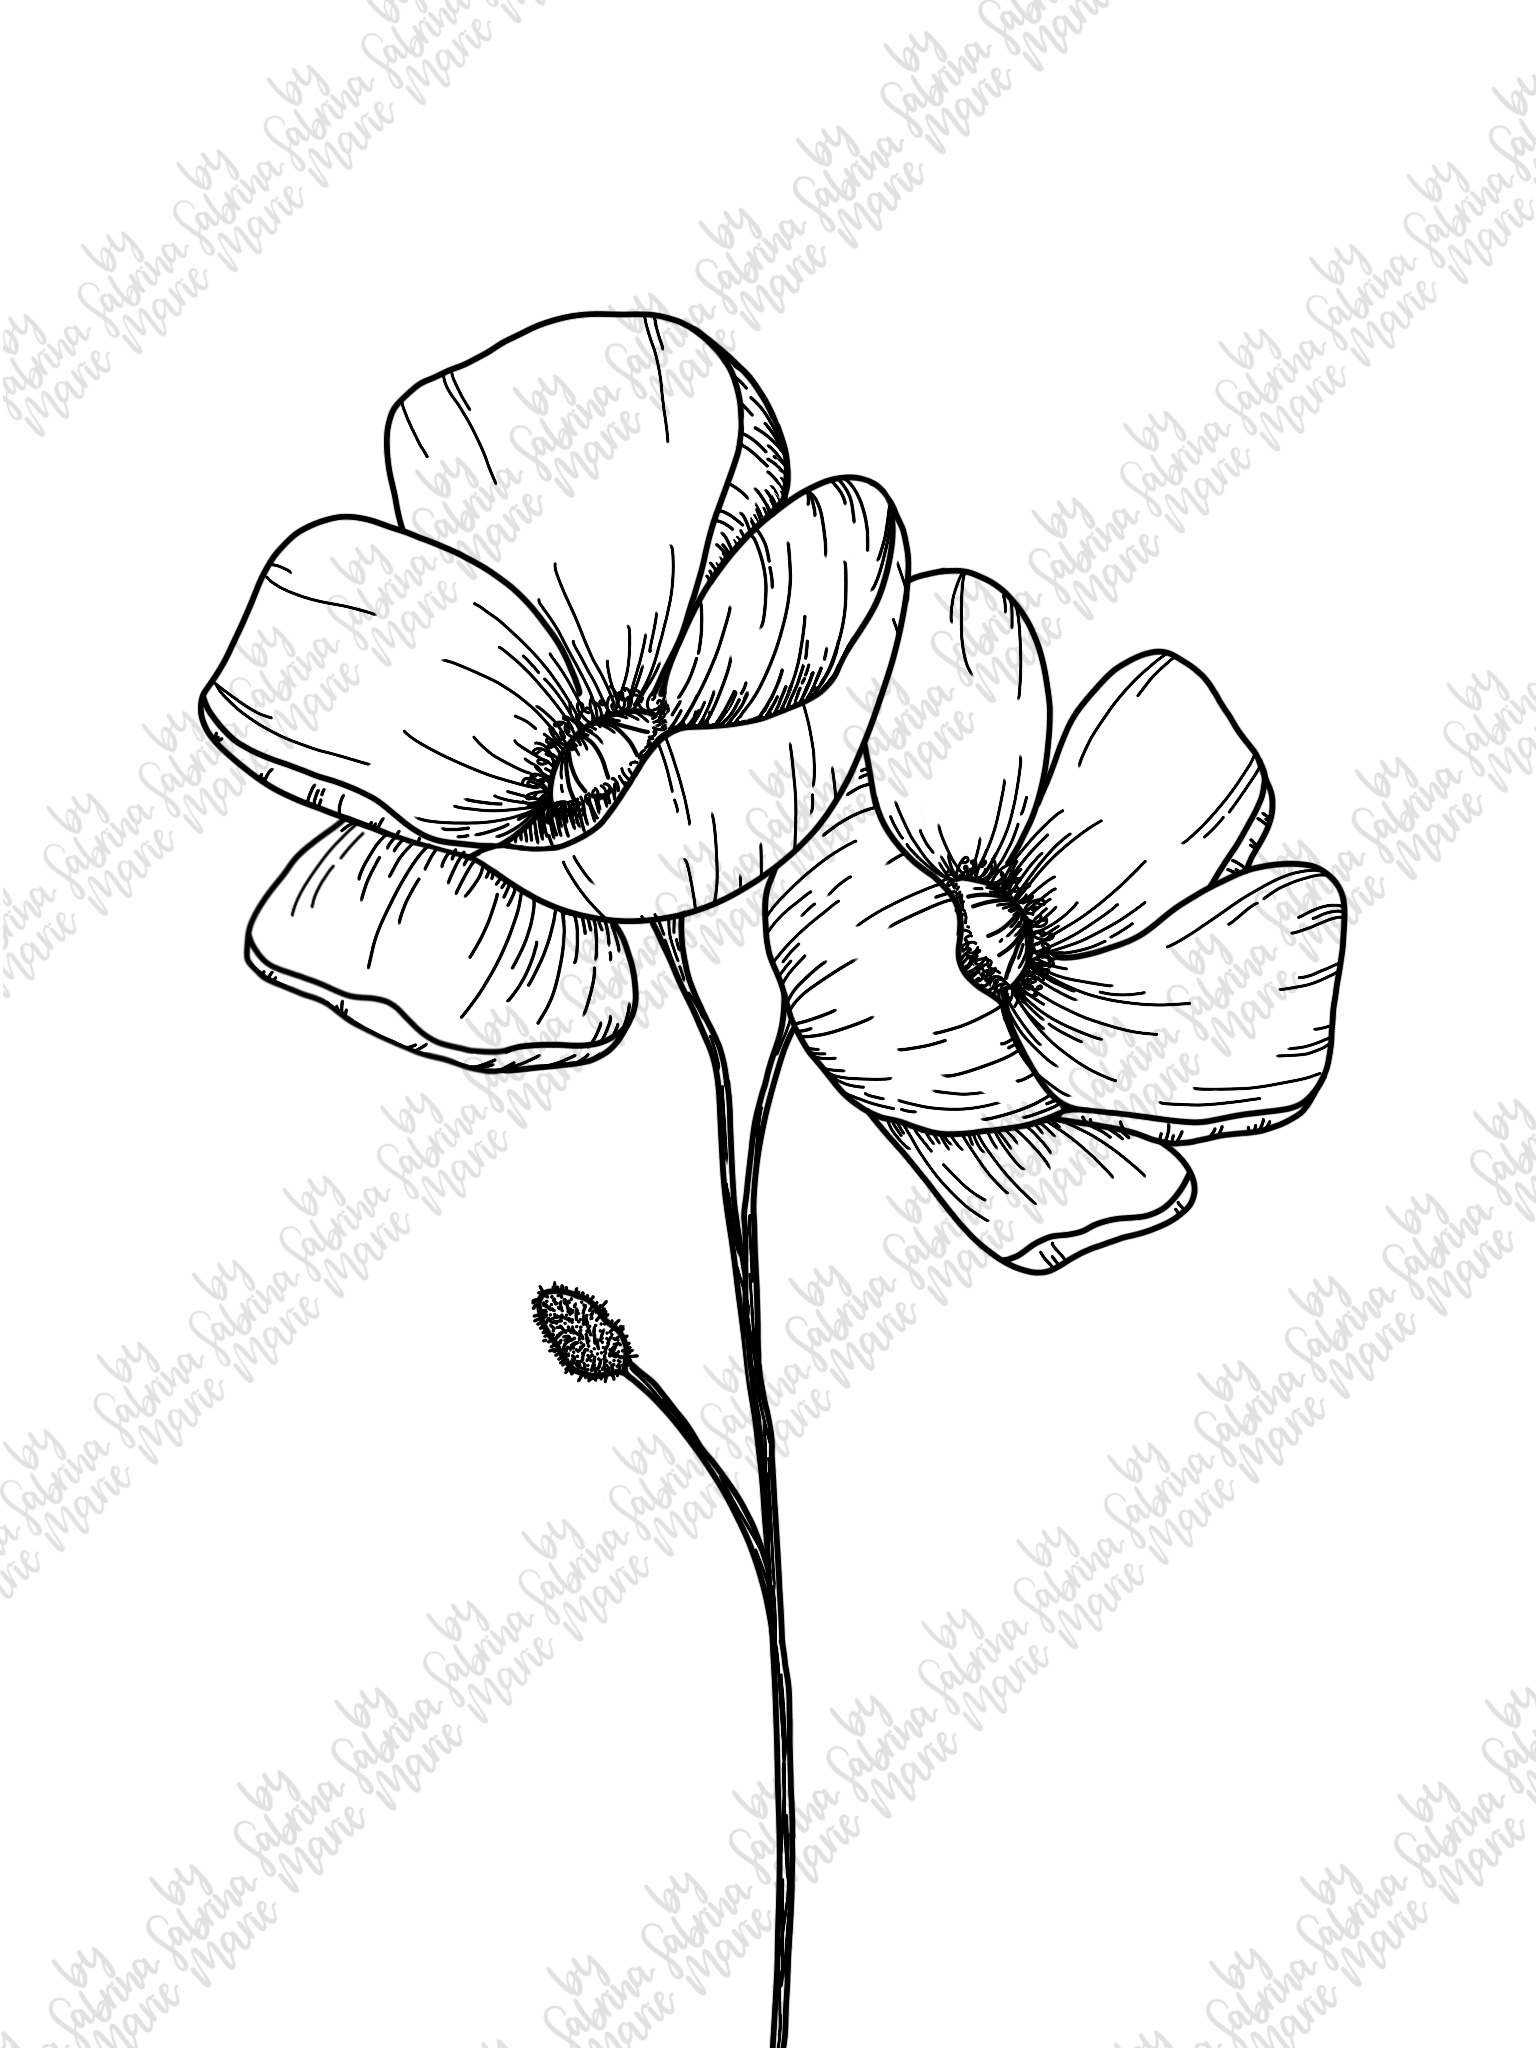 Poppies Handdrawn Flower Line Drawing SVG & PNG (175277